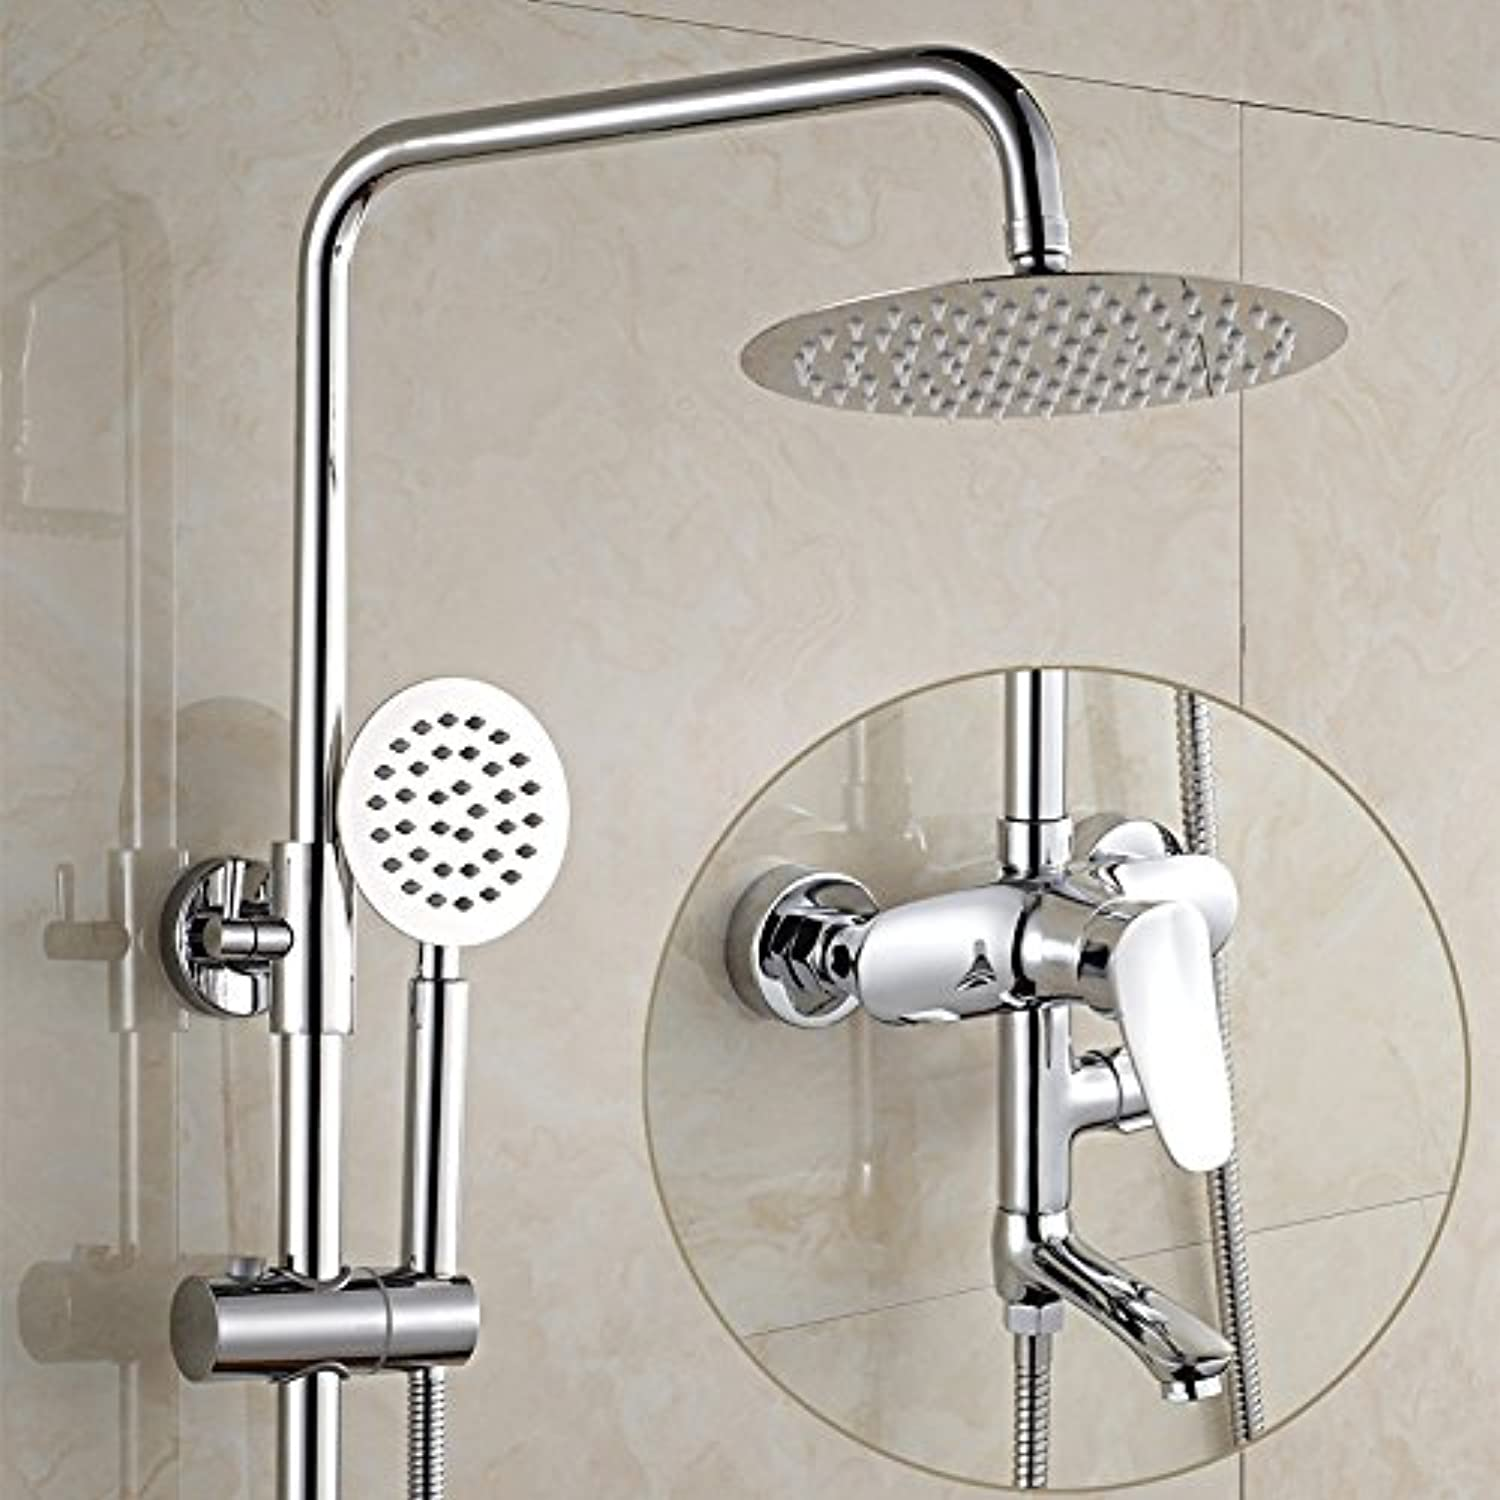 Hlluya Professional Sink Mixer Tap Kitchen Faucet Mixing of hot and cold water faucets full copper shower three stall shower kit to lift mixing of hot and cold pressurized, sharks, Third Gear